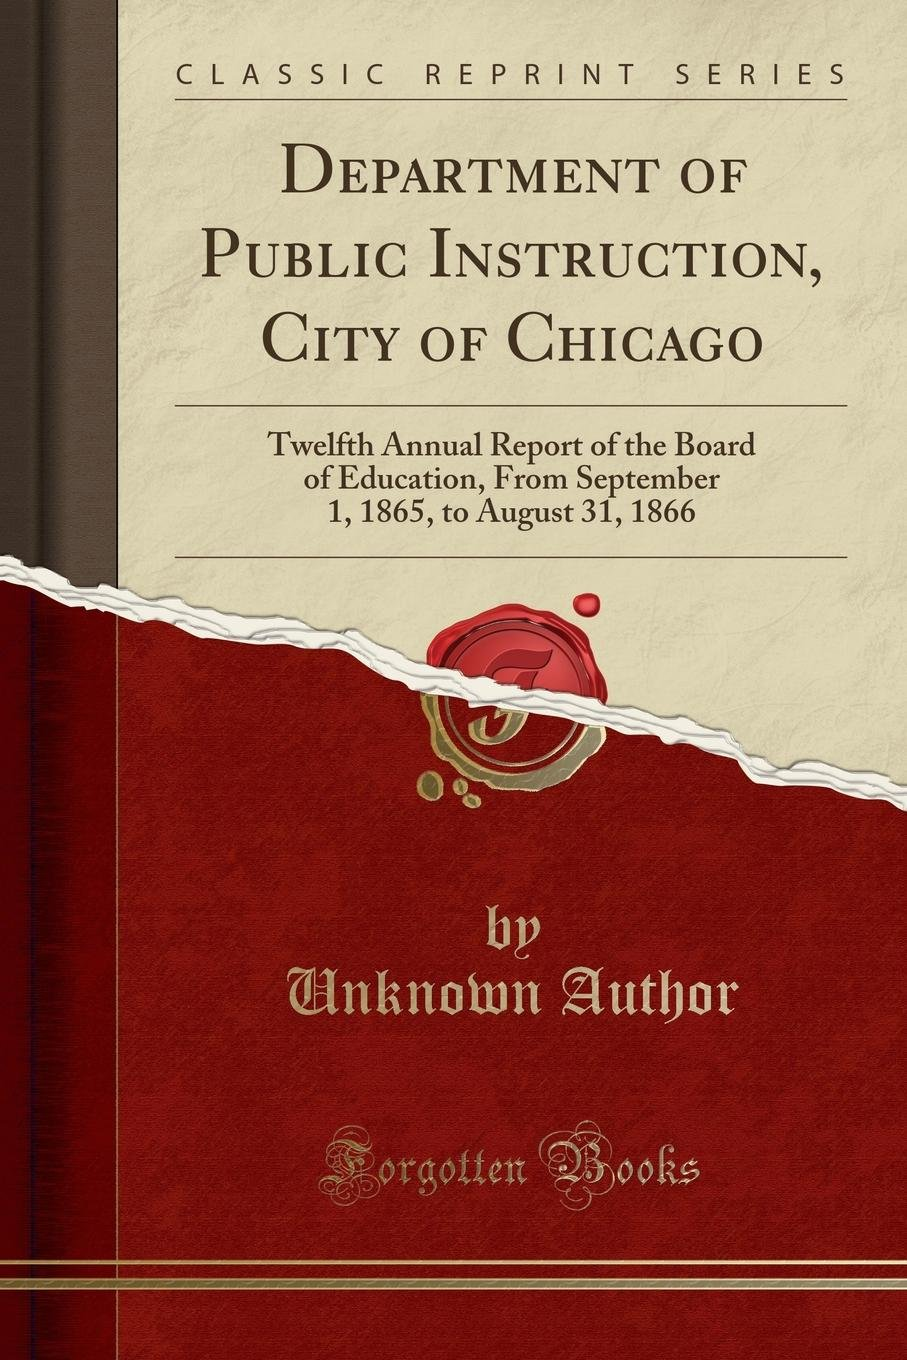 Download Department of Public Instruction, City of Chicago: Twelfth Annual Report of the Board of Education, From September 1, 1865, to August 31, 1866 (Classic Reprint) ebook